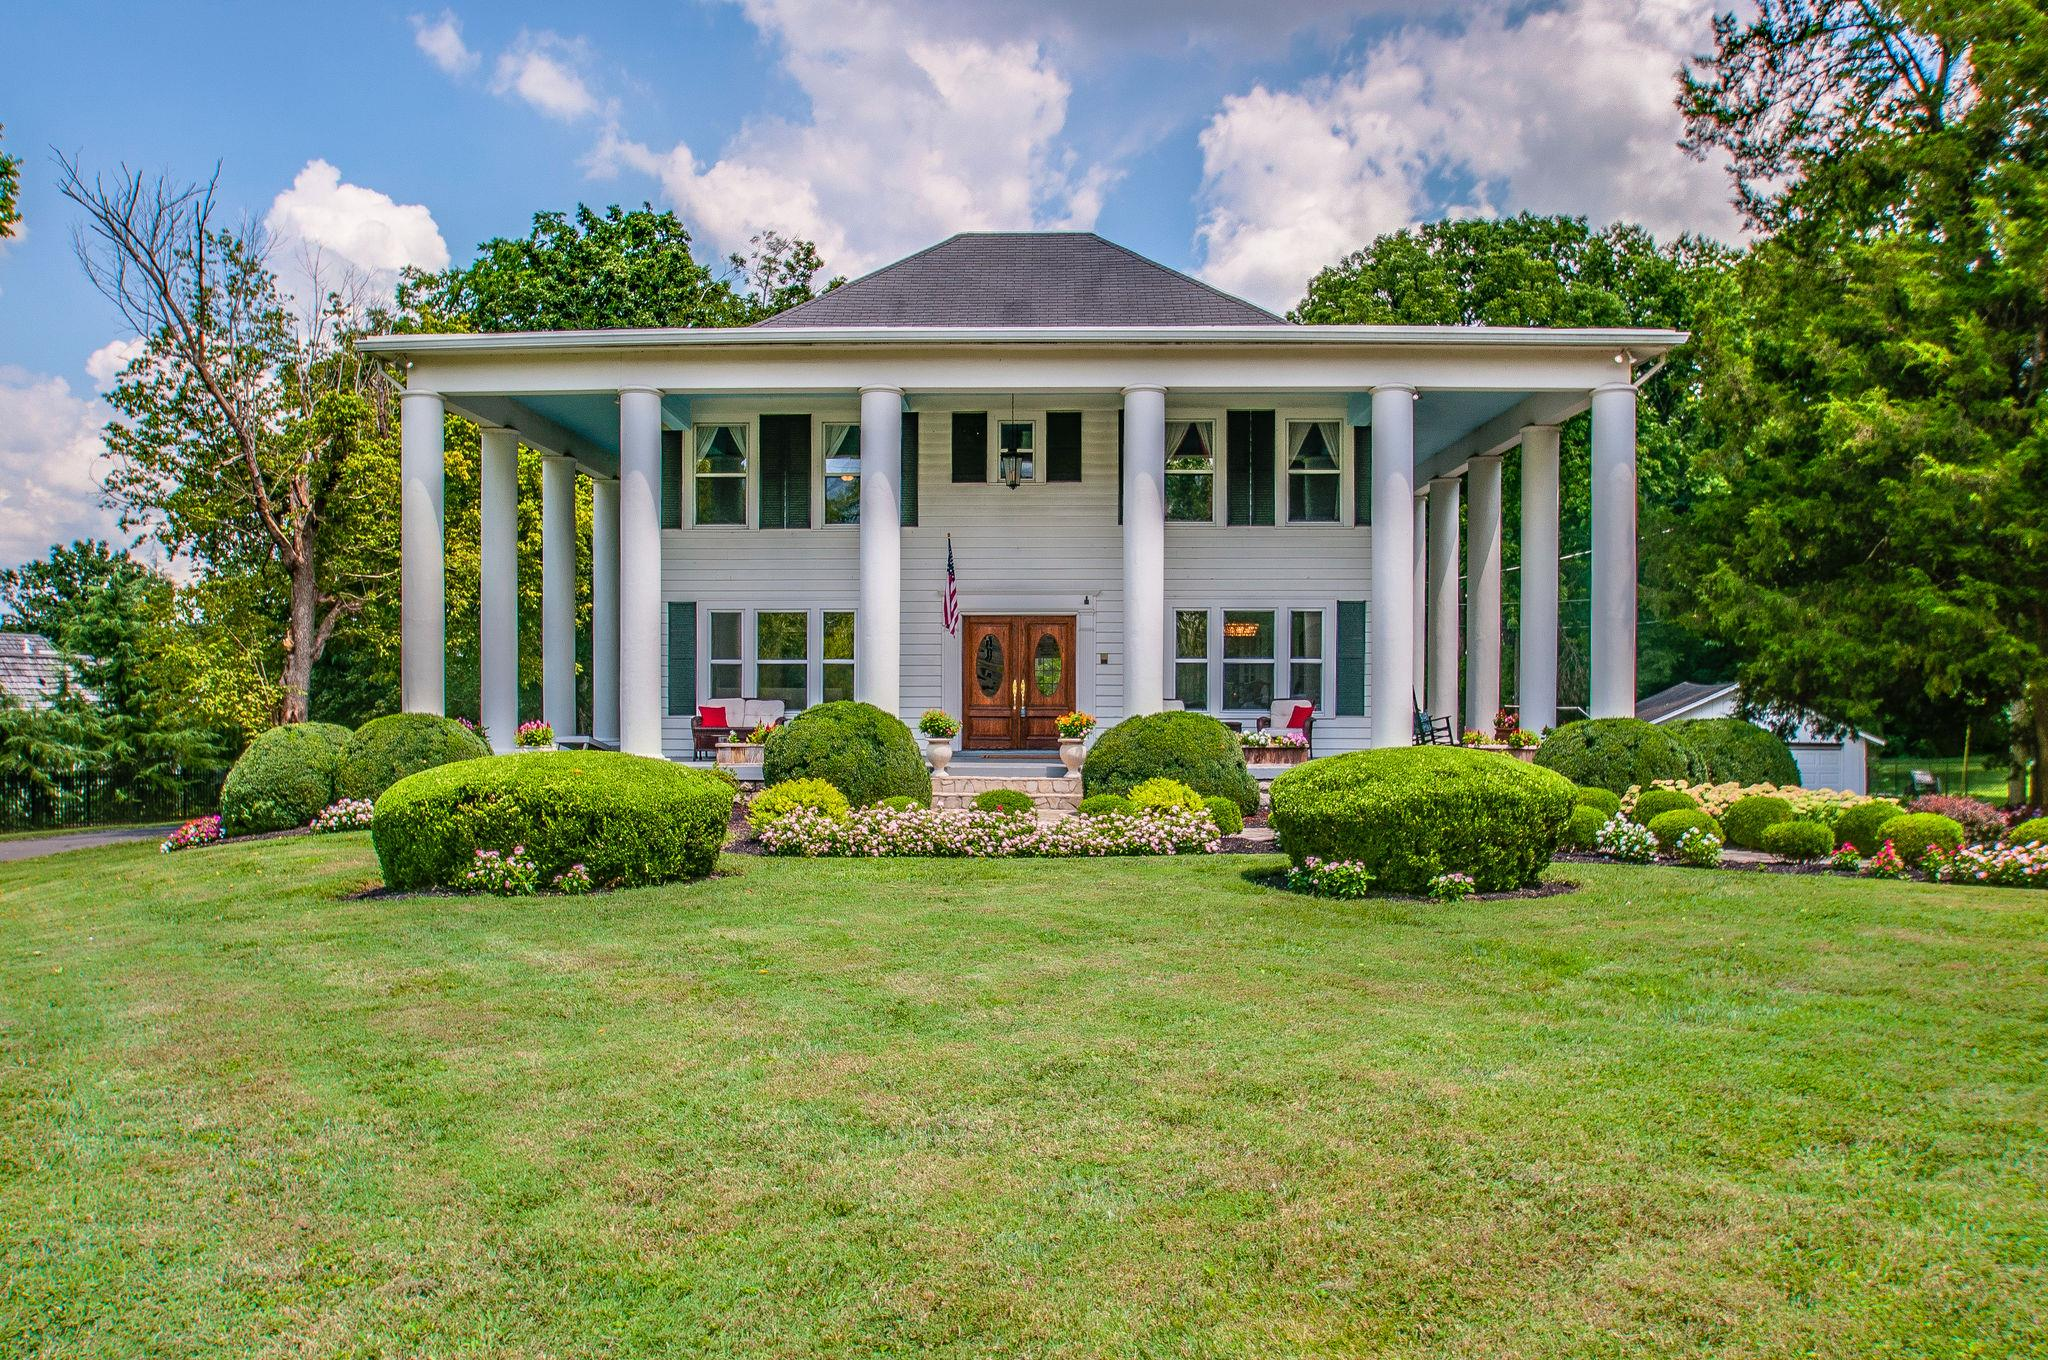 4214 Franklin Pike, Nashville, TN 37204 - Nashville, TN real estate listing